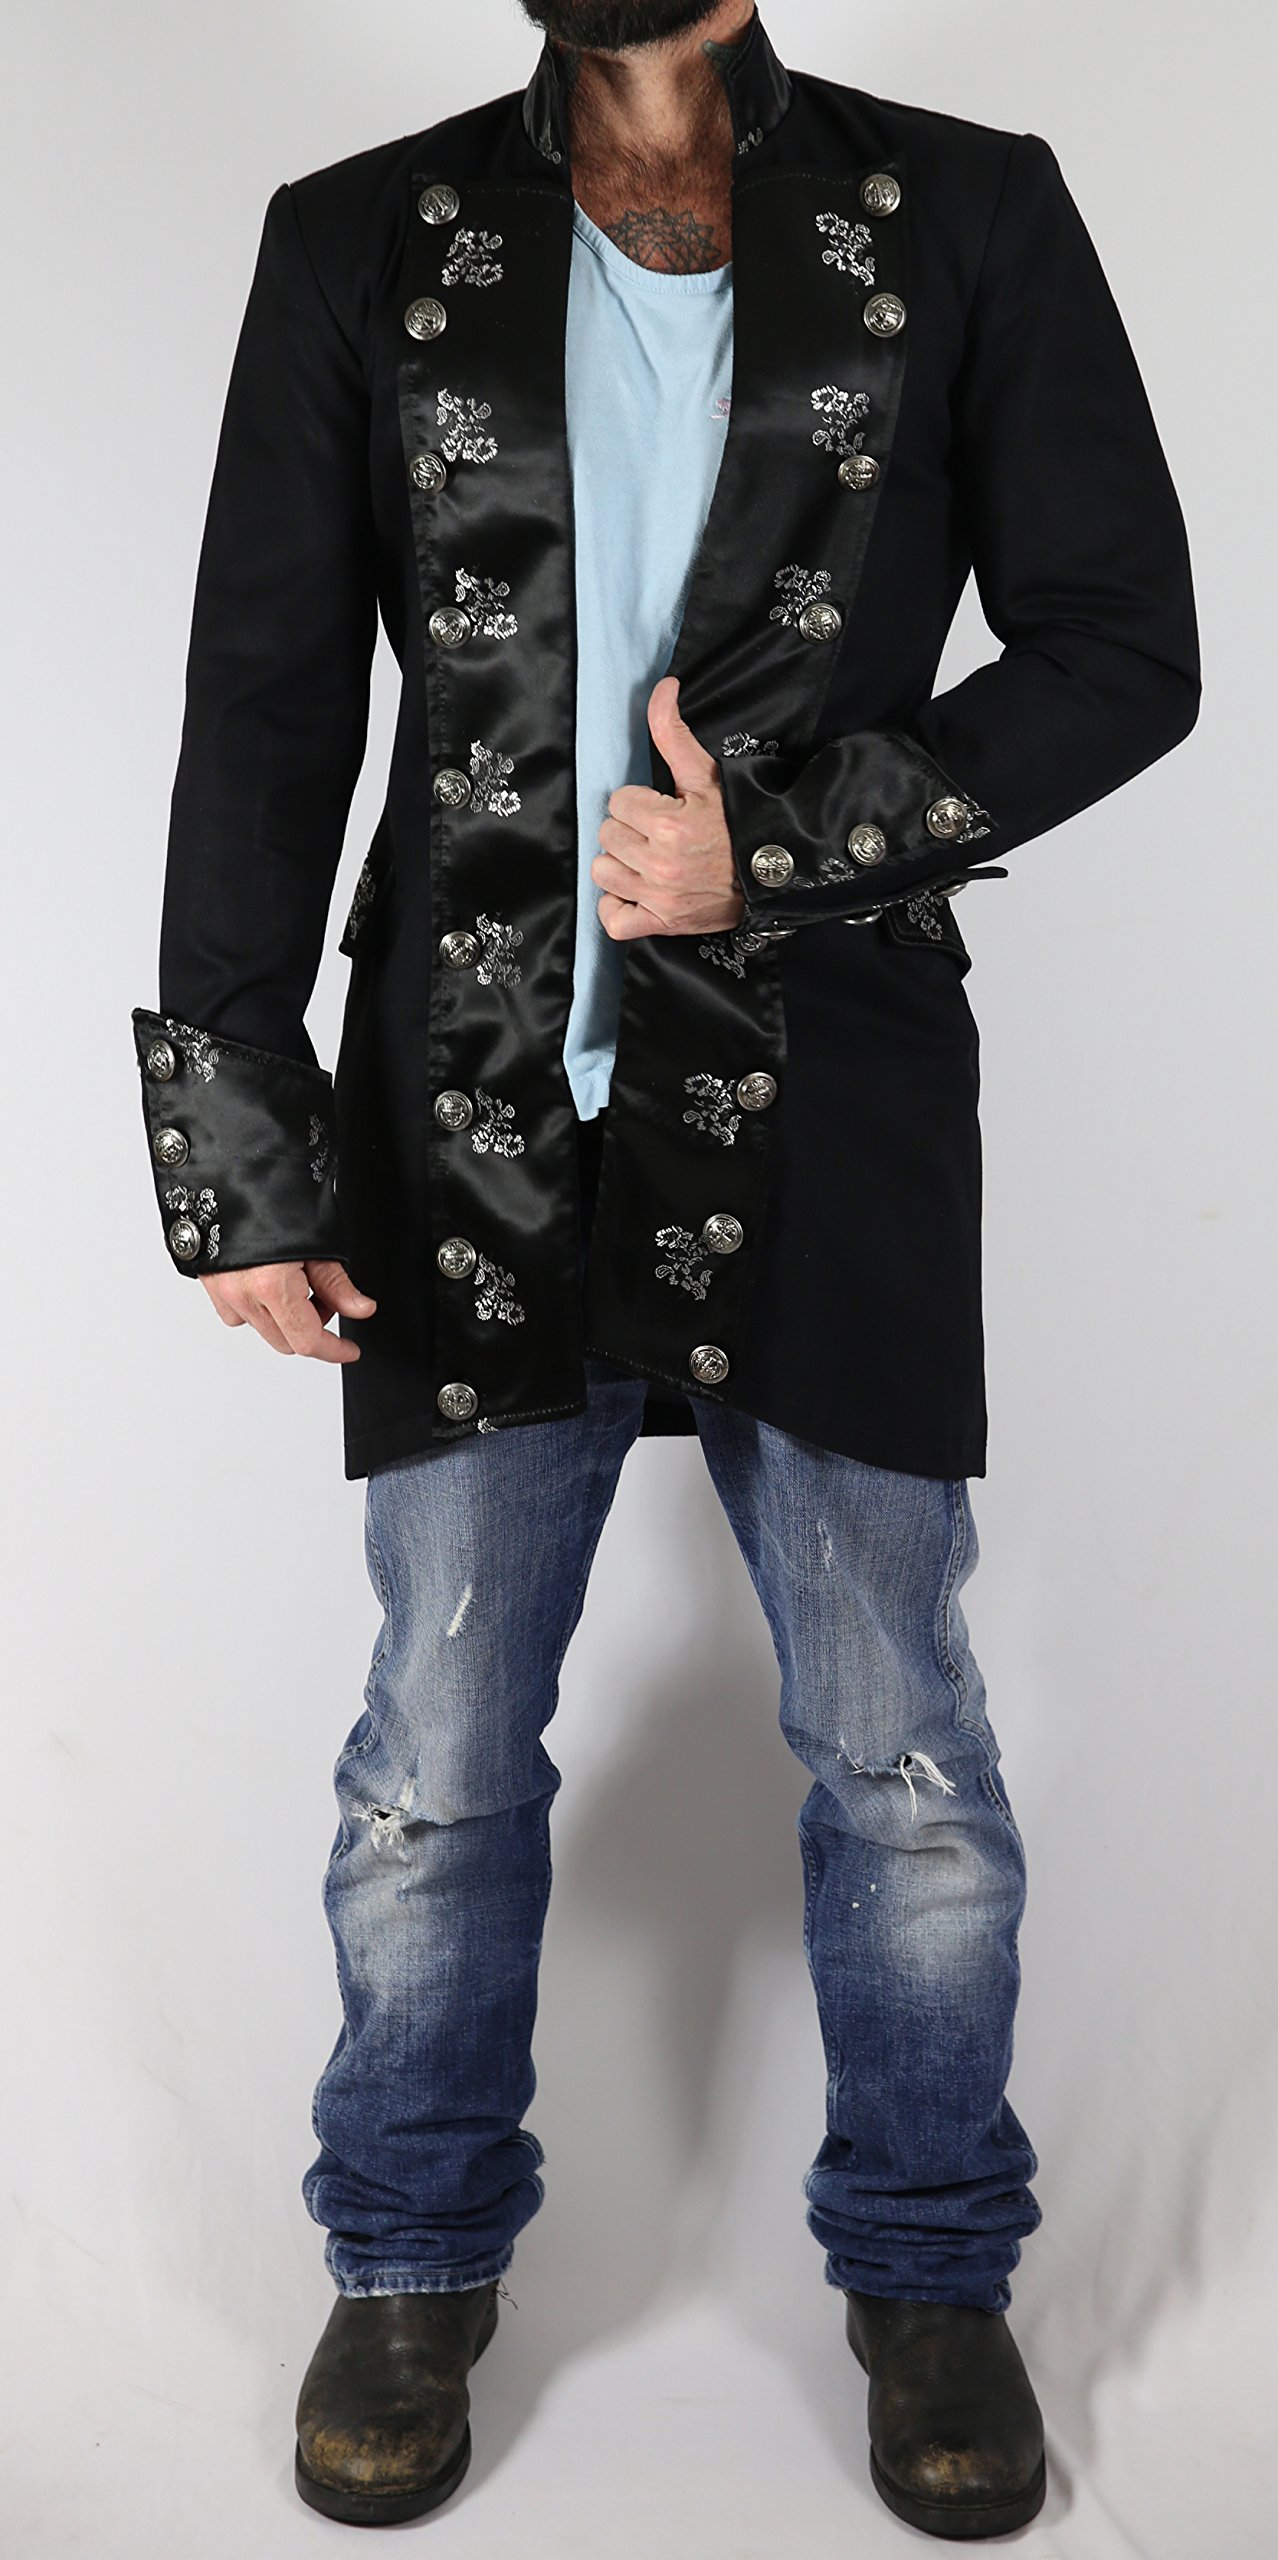 Eimee Men's Cotton Gothic Steampunk Outfit Vintage Dress Coat Pirate Top SPFL 4